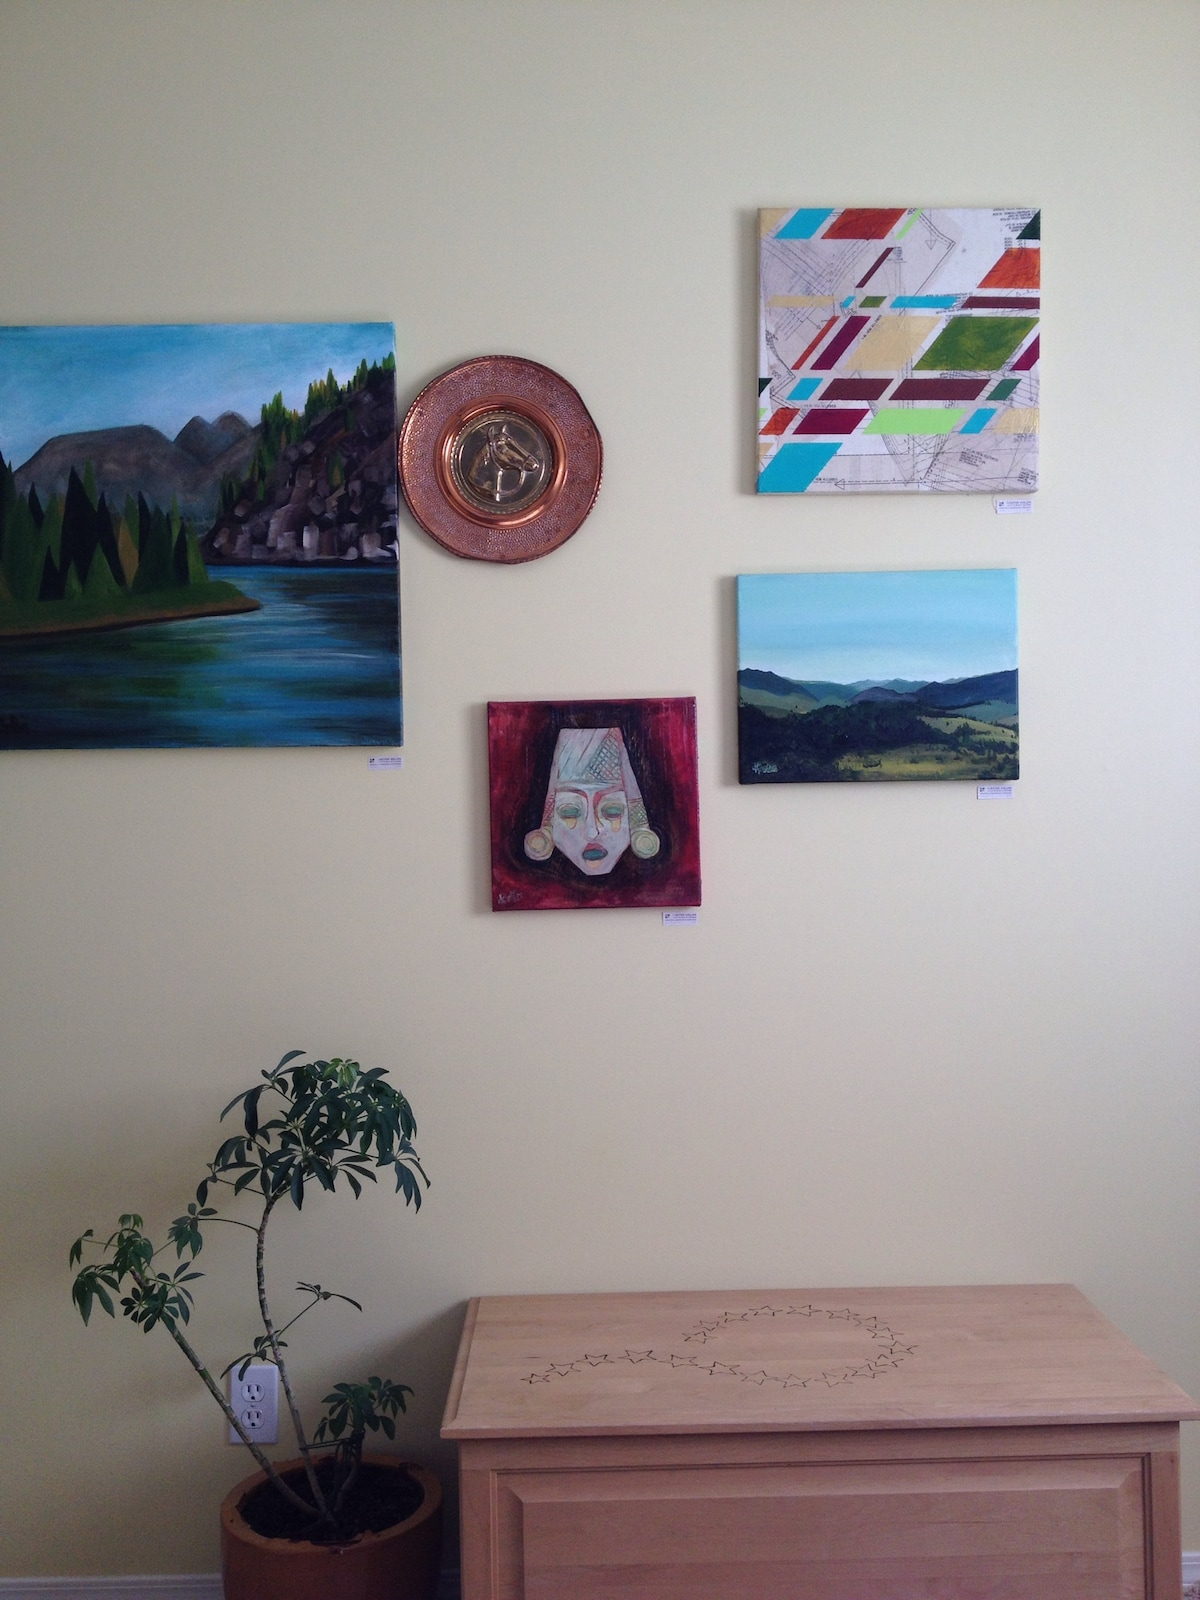 Your Bedroom - art is tagged for sale - my sister is selling some original artwork - ask me about it :)